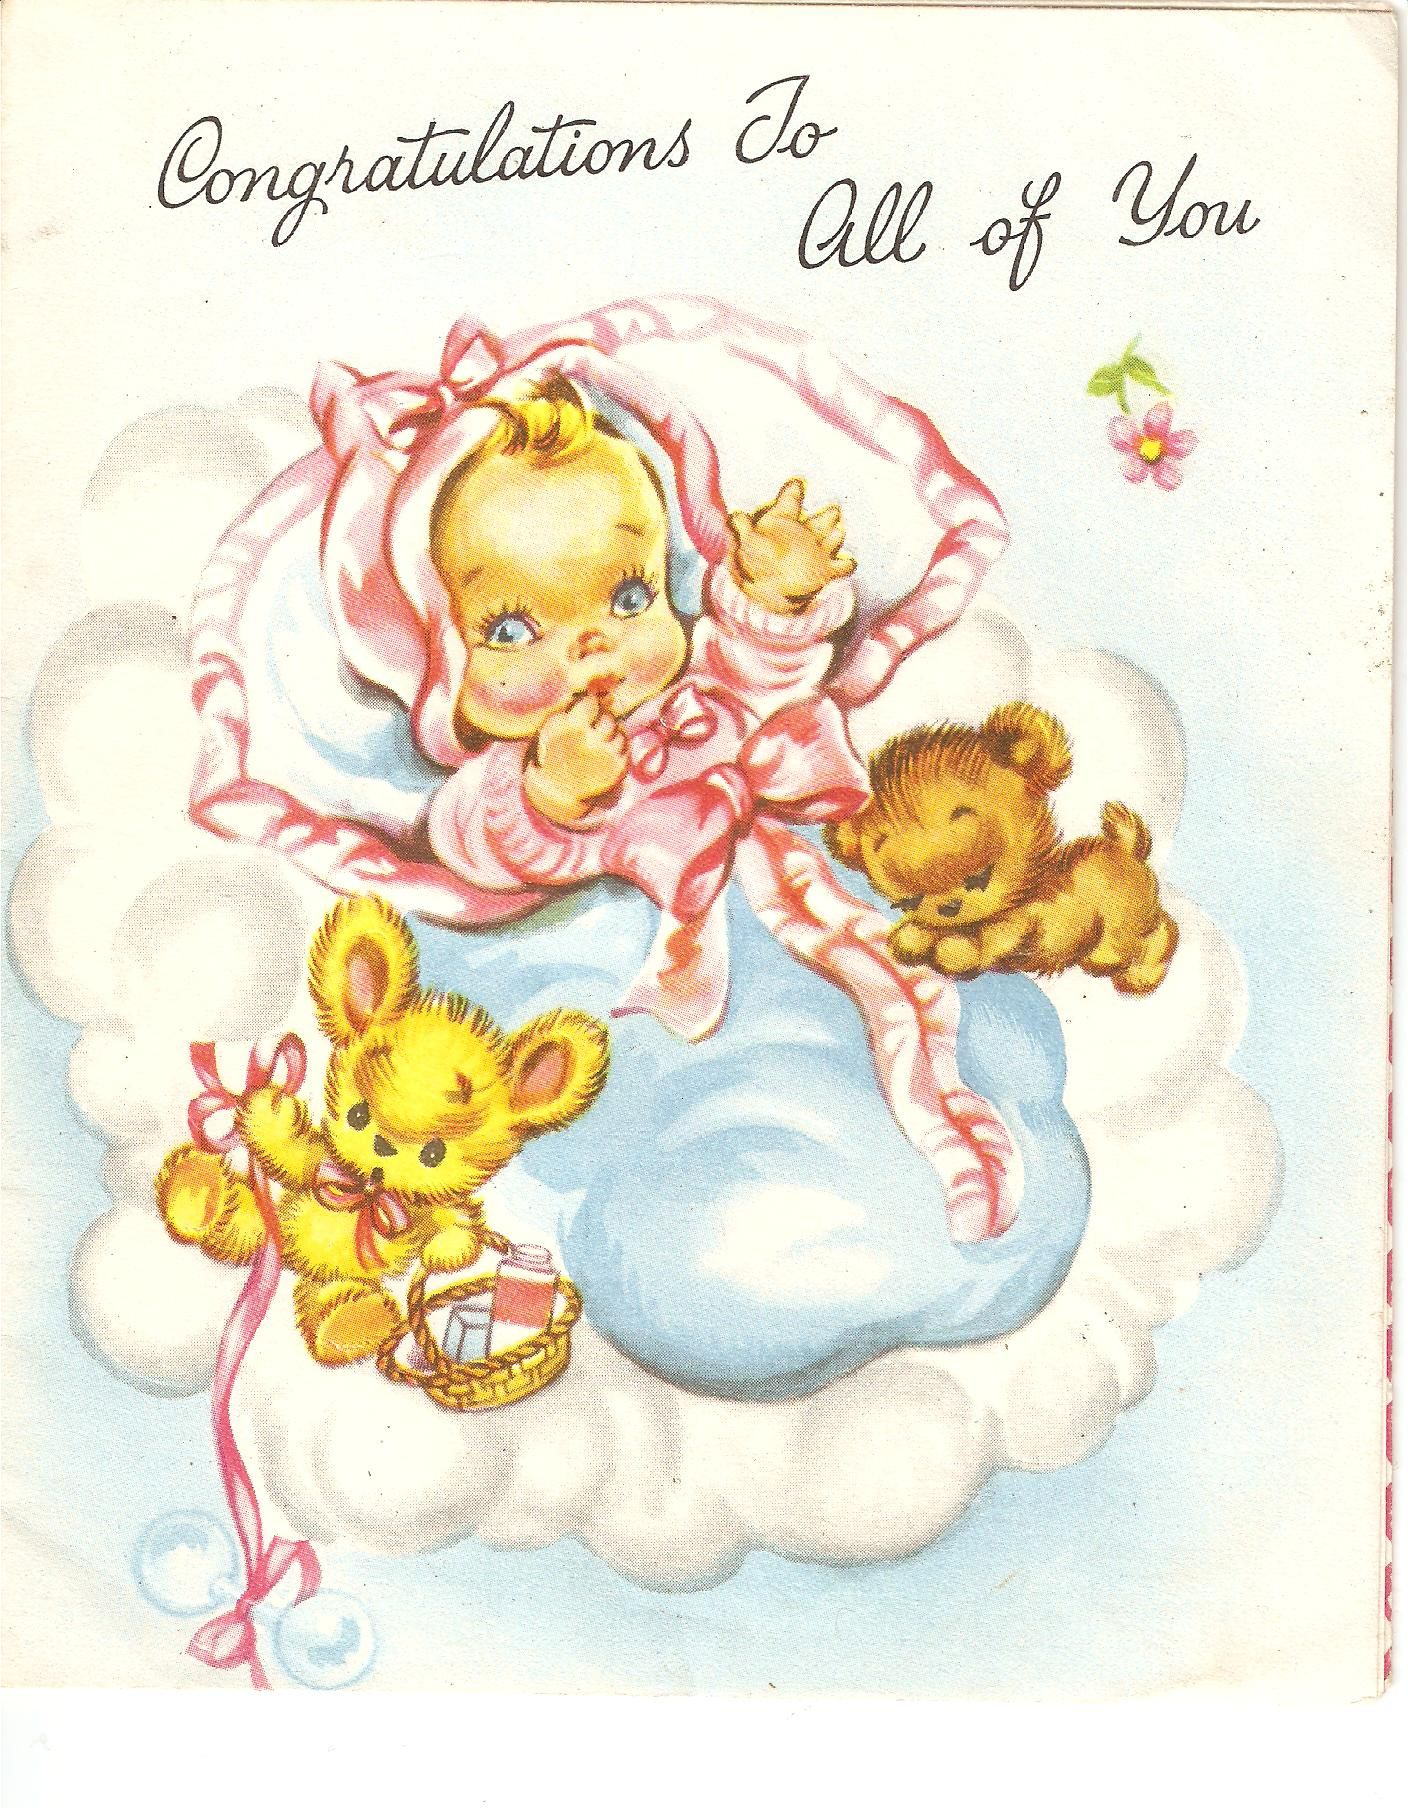 Newborn baby girl greeting card 1960s cards baby pinterest newborn baby girl greeting card 1960s kristyandbryce Gallery